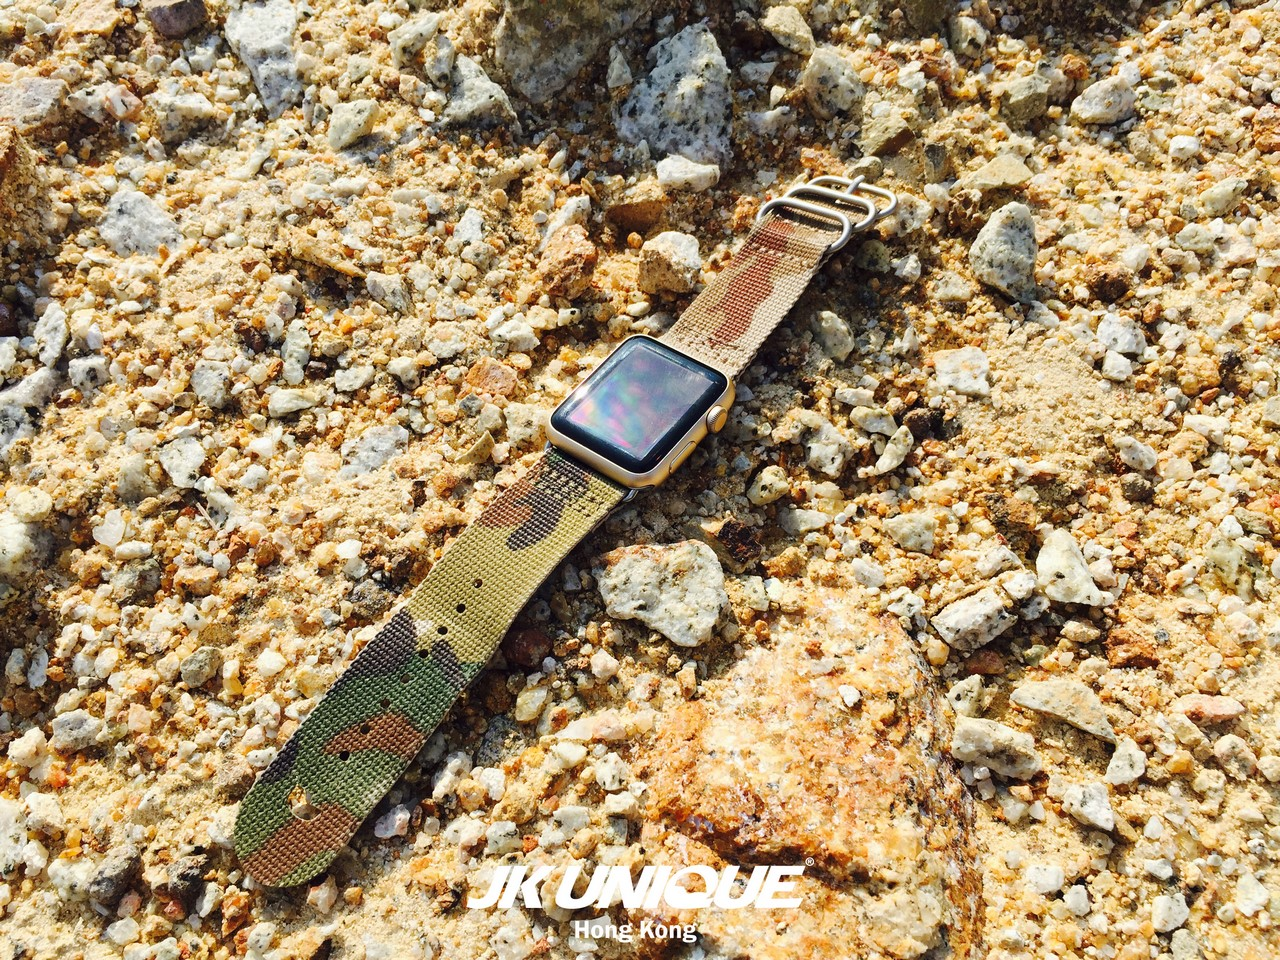 JK UNIQUE CAMO NATO Style Apple Watch Strap 42mm 15 (1280).jpg